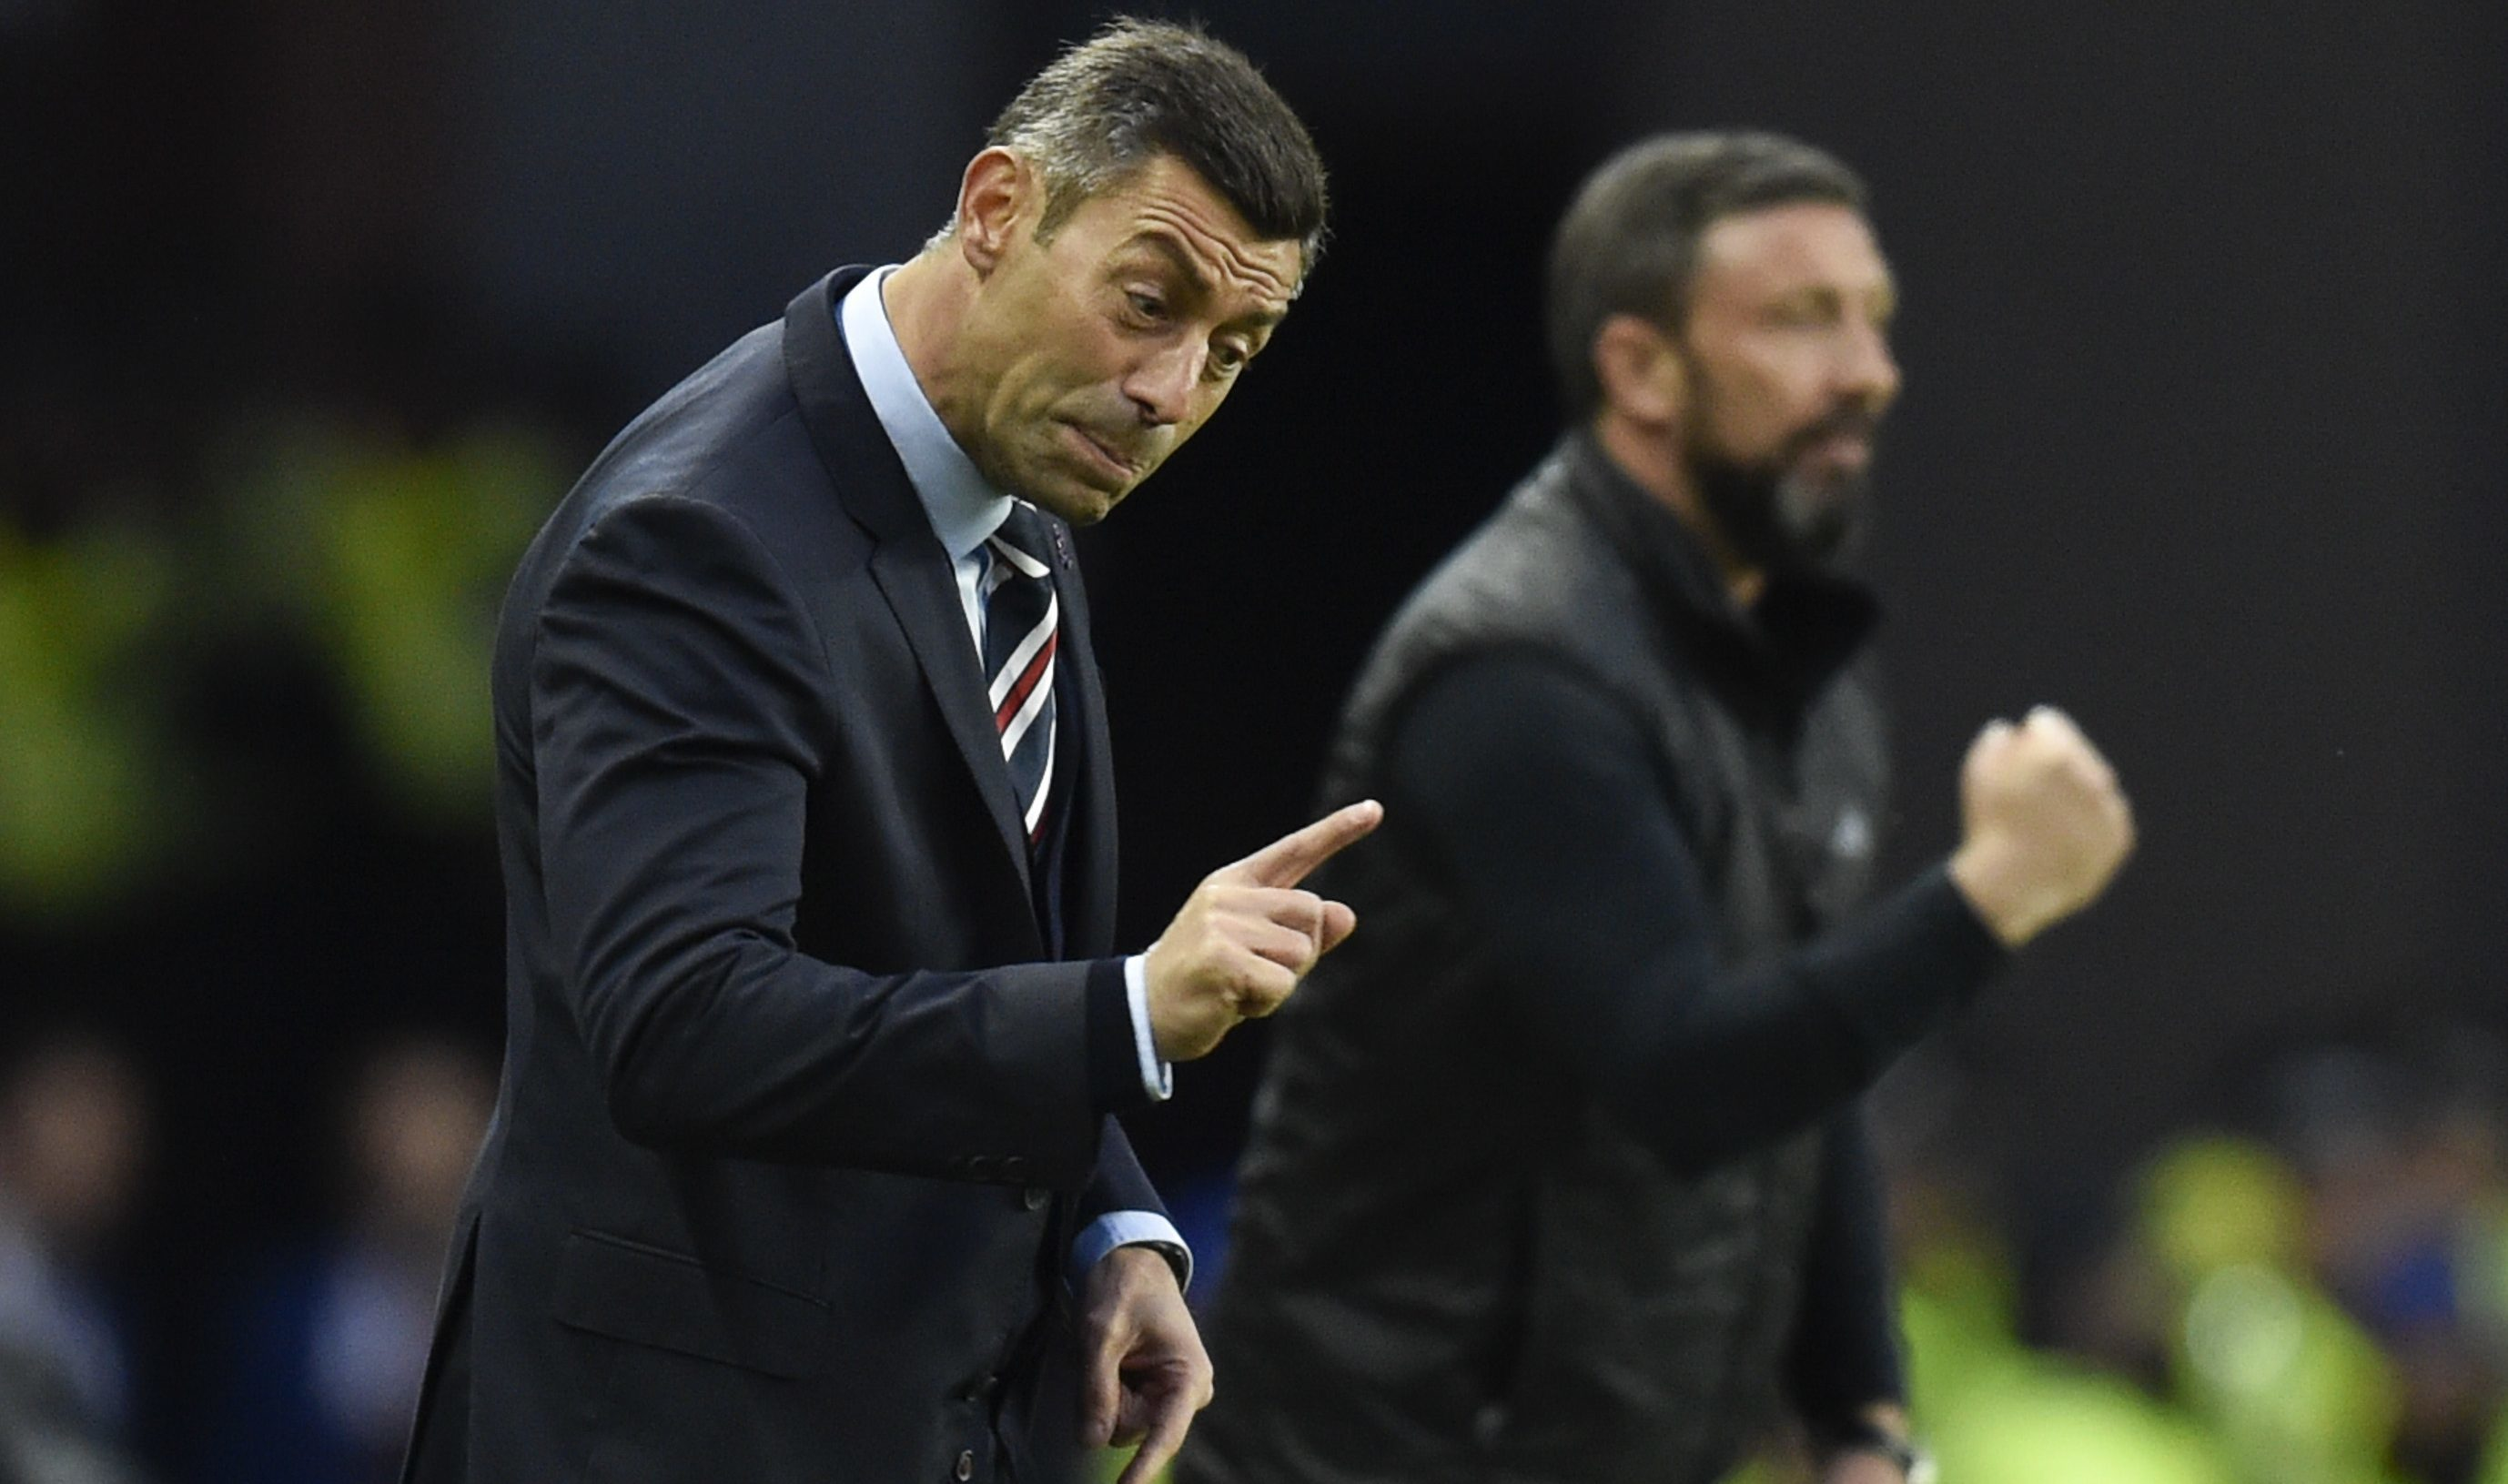 Pedro Caixinha and Derek McInnes on the touchline (SNS Group / Rob Casey)